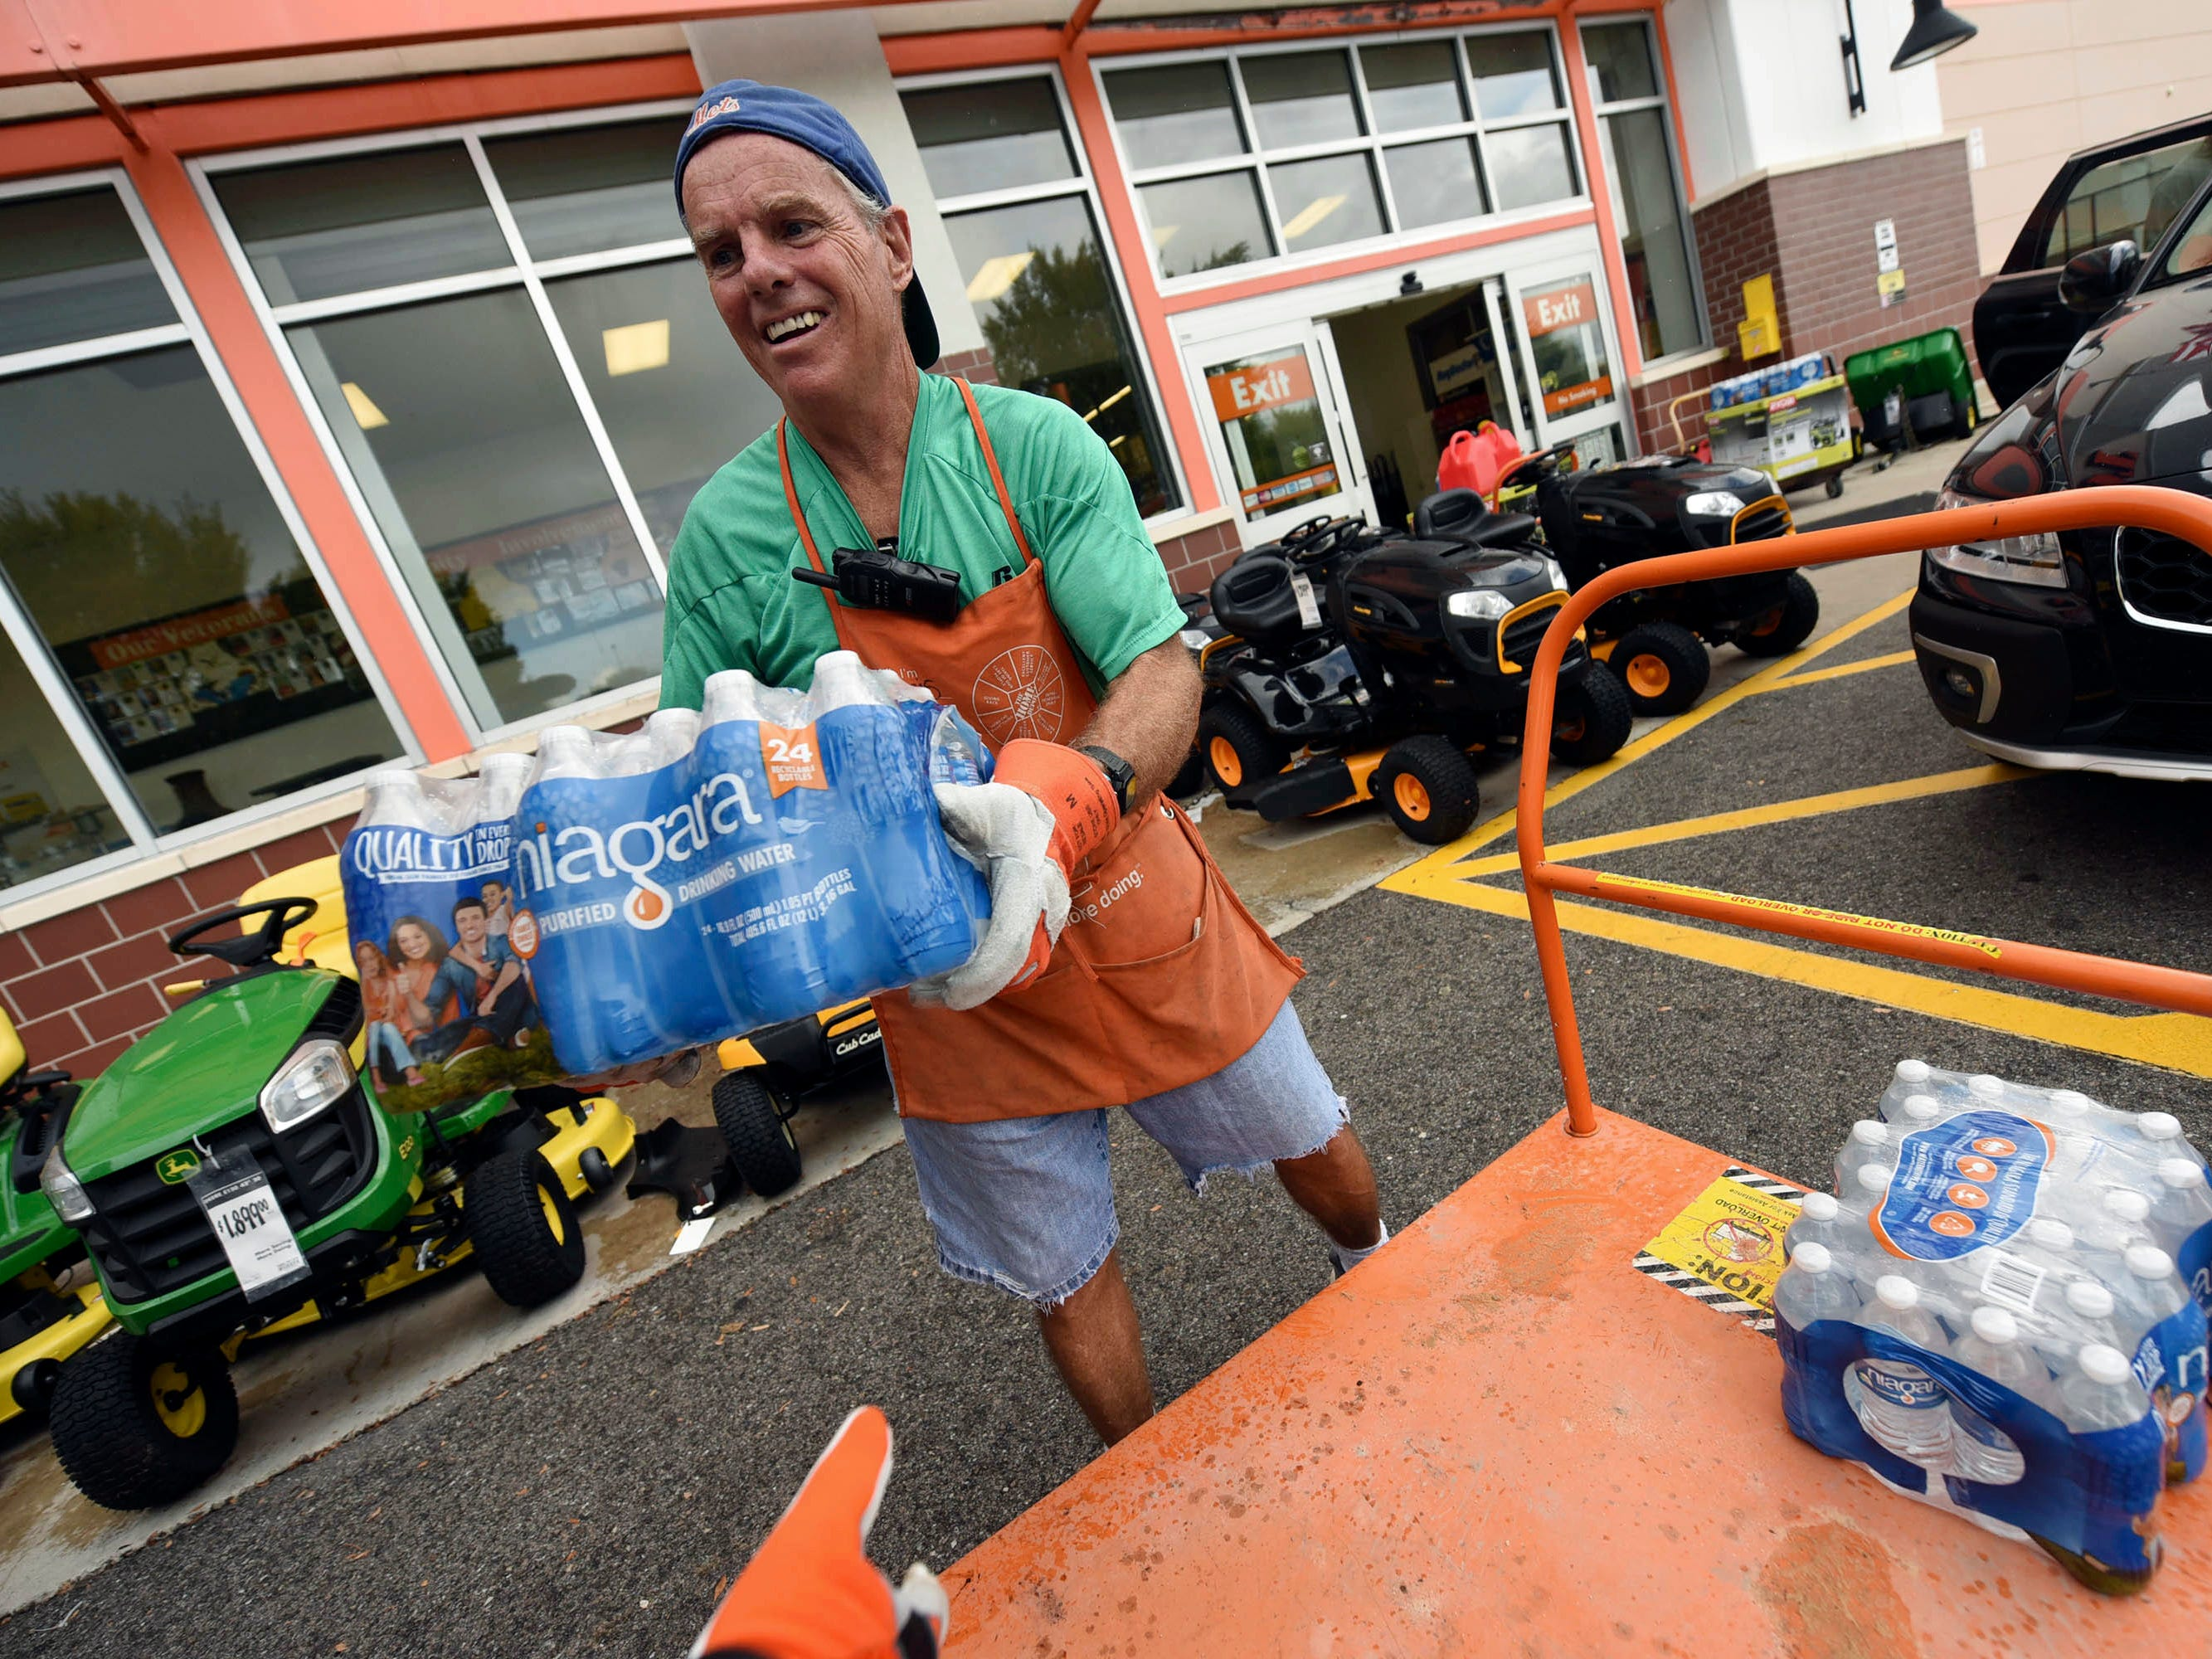 Chris Rayner helps customers load their cars as they buy supplies at The Home Depot on Monday, Sept. 10, 2018, in Wilmington, N.C. Hurricane Florence rapidly strengthened into a potentially catastrophic hurricane on Monday as it closed in on North and South Carolina, carrying winds and water that could wreak havoc over a wide stretch of the eastern United States later this week.